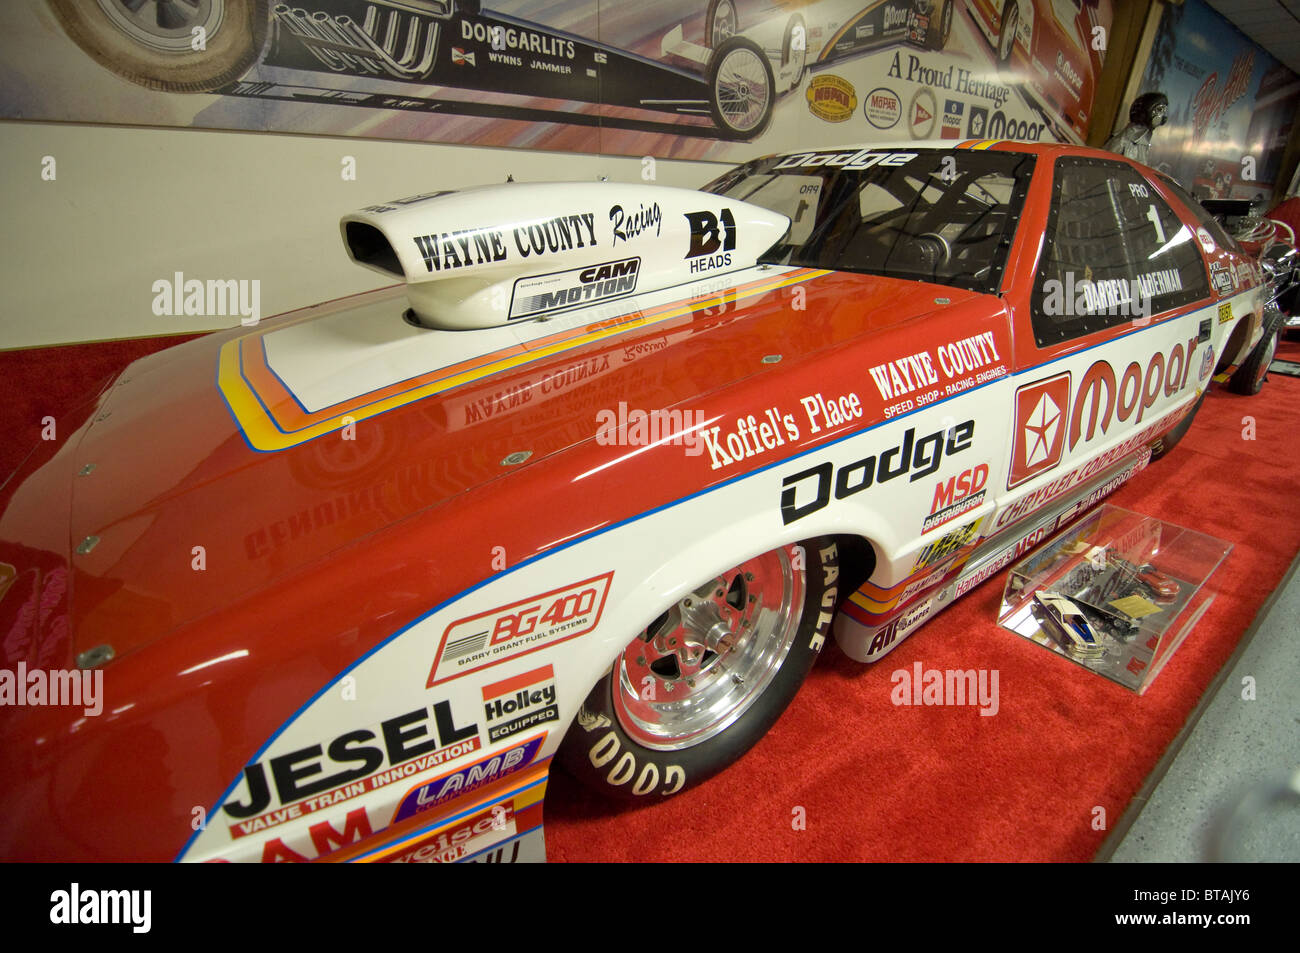 Daytona racing museum